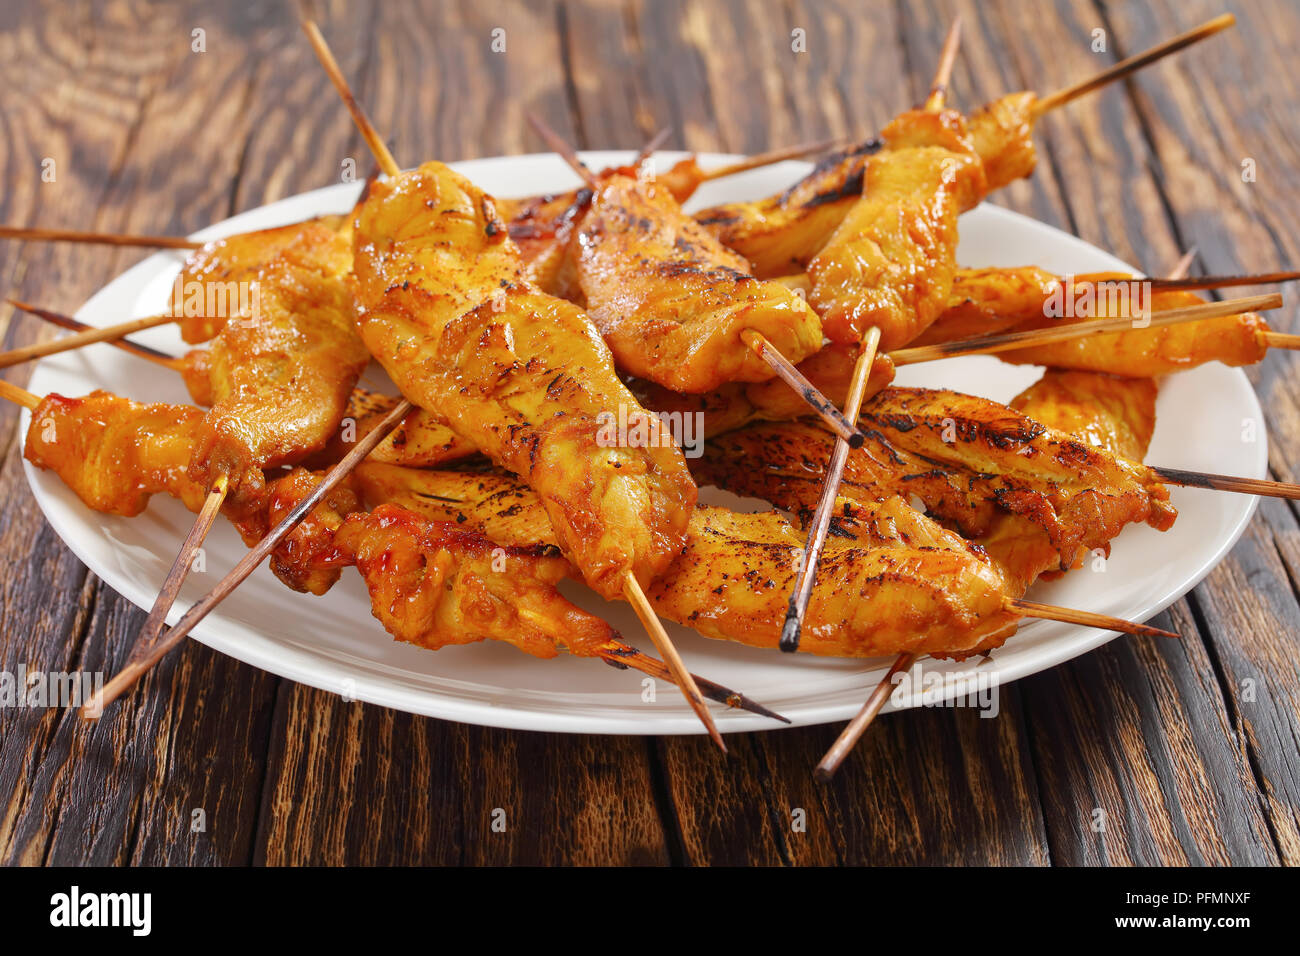 close-up of grilled Chicken satay on skewers on a white plate on rustic wooden table, classic recipe, street food, view from above - Stock Image